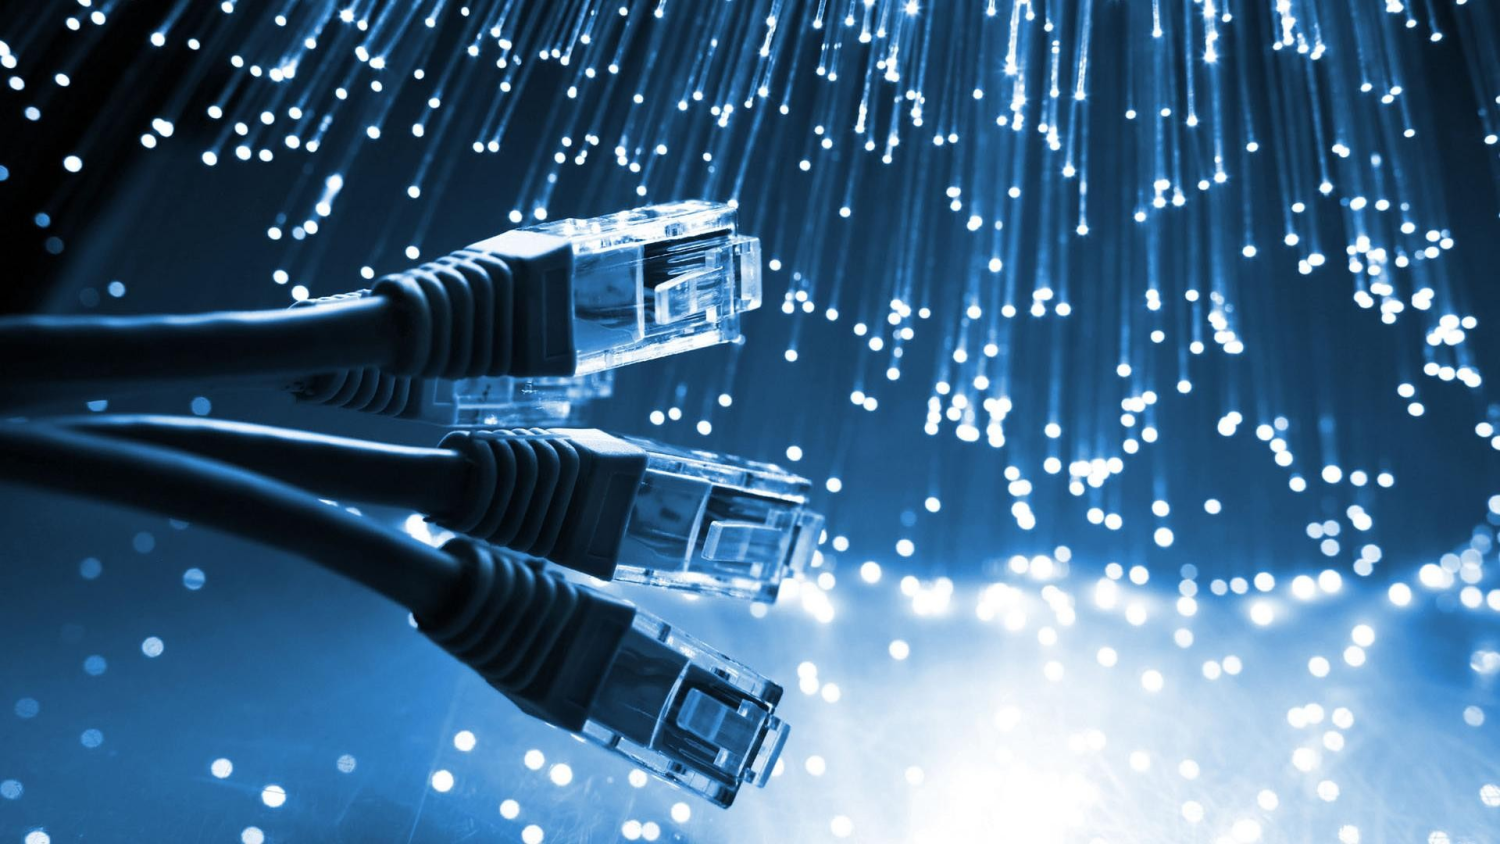 optical-fibre-results-nail-world-network-cables-photo-fiber-optic-cables